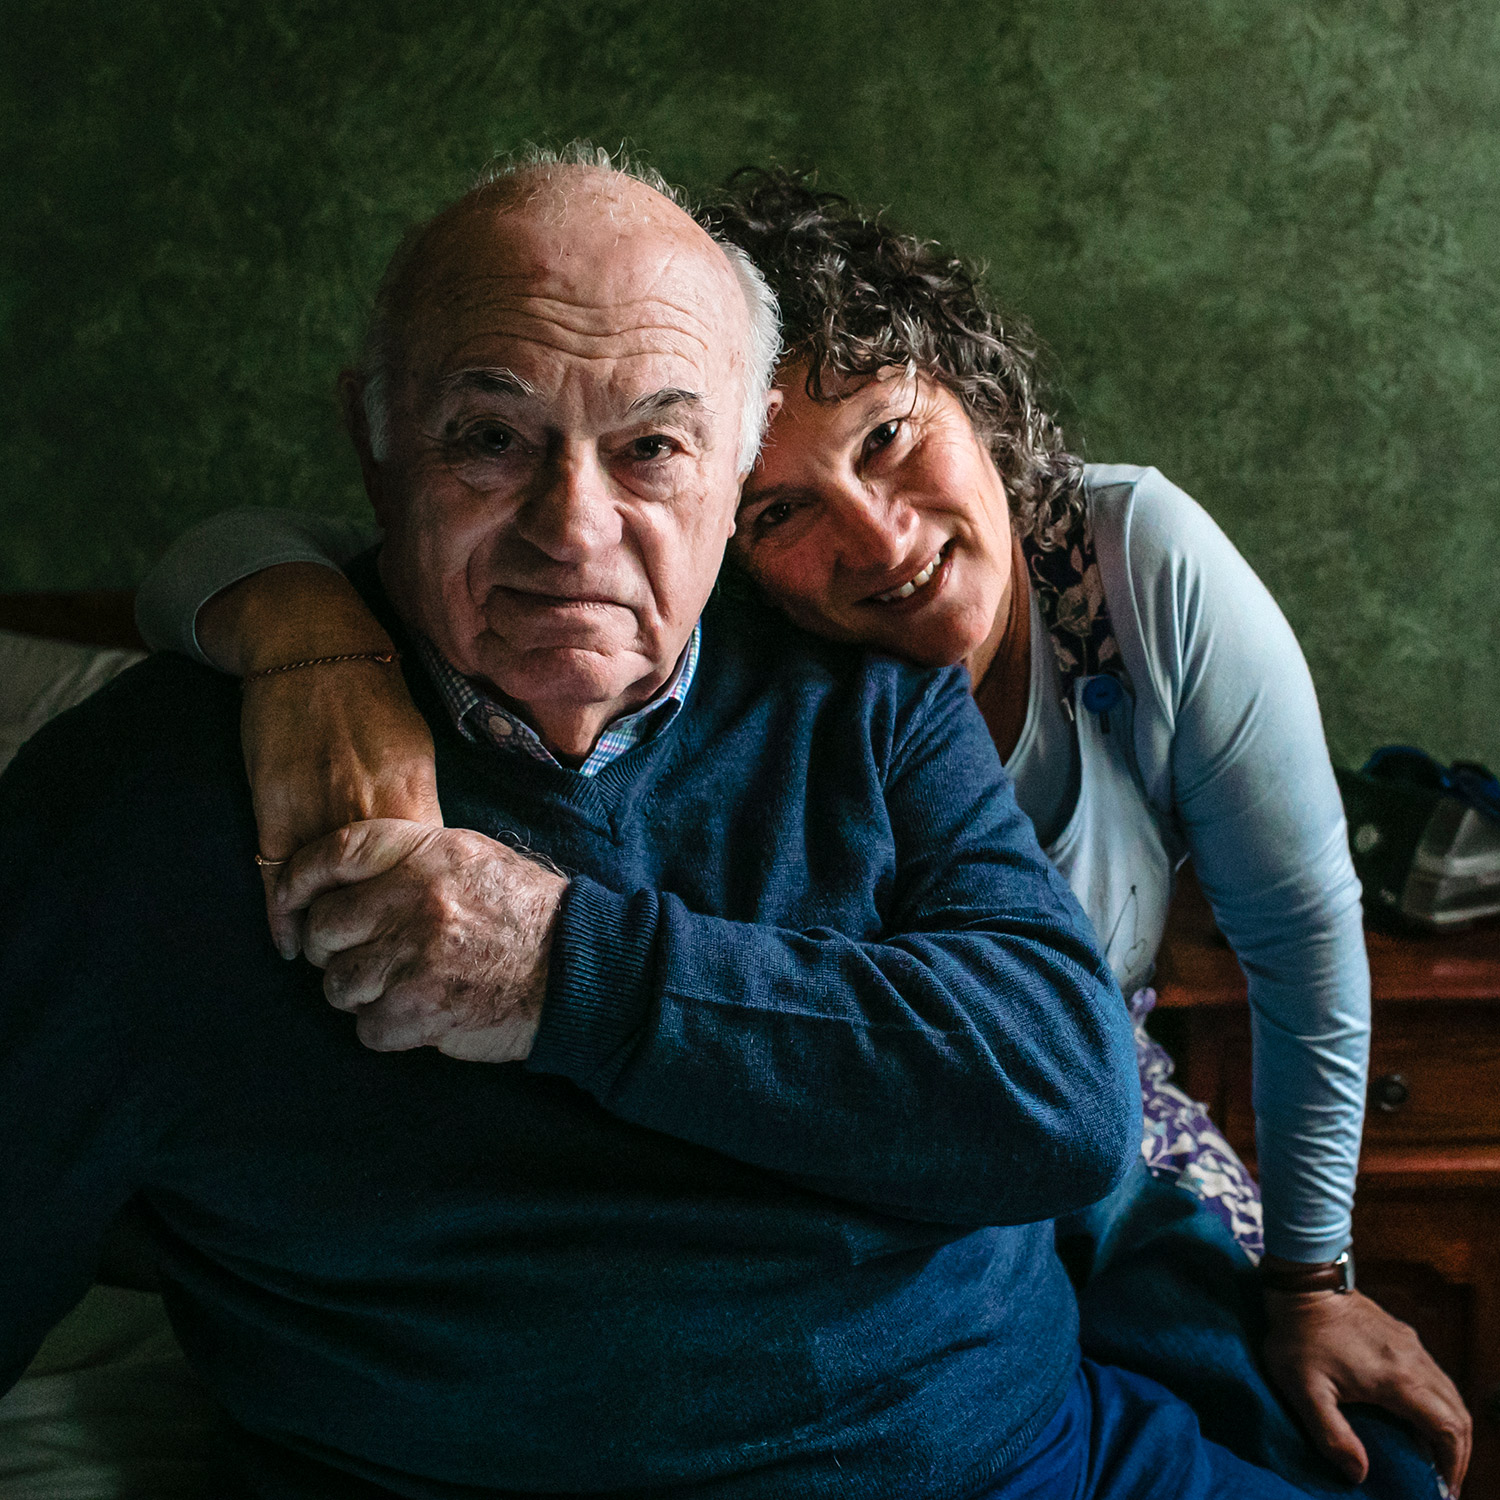 Father-and-daughter-portrait-natural-light.jpg